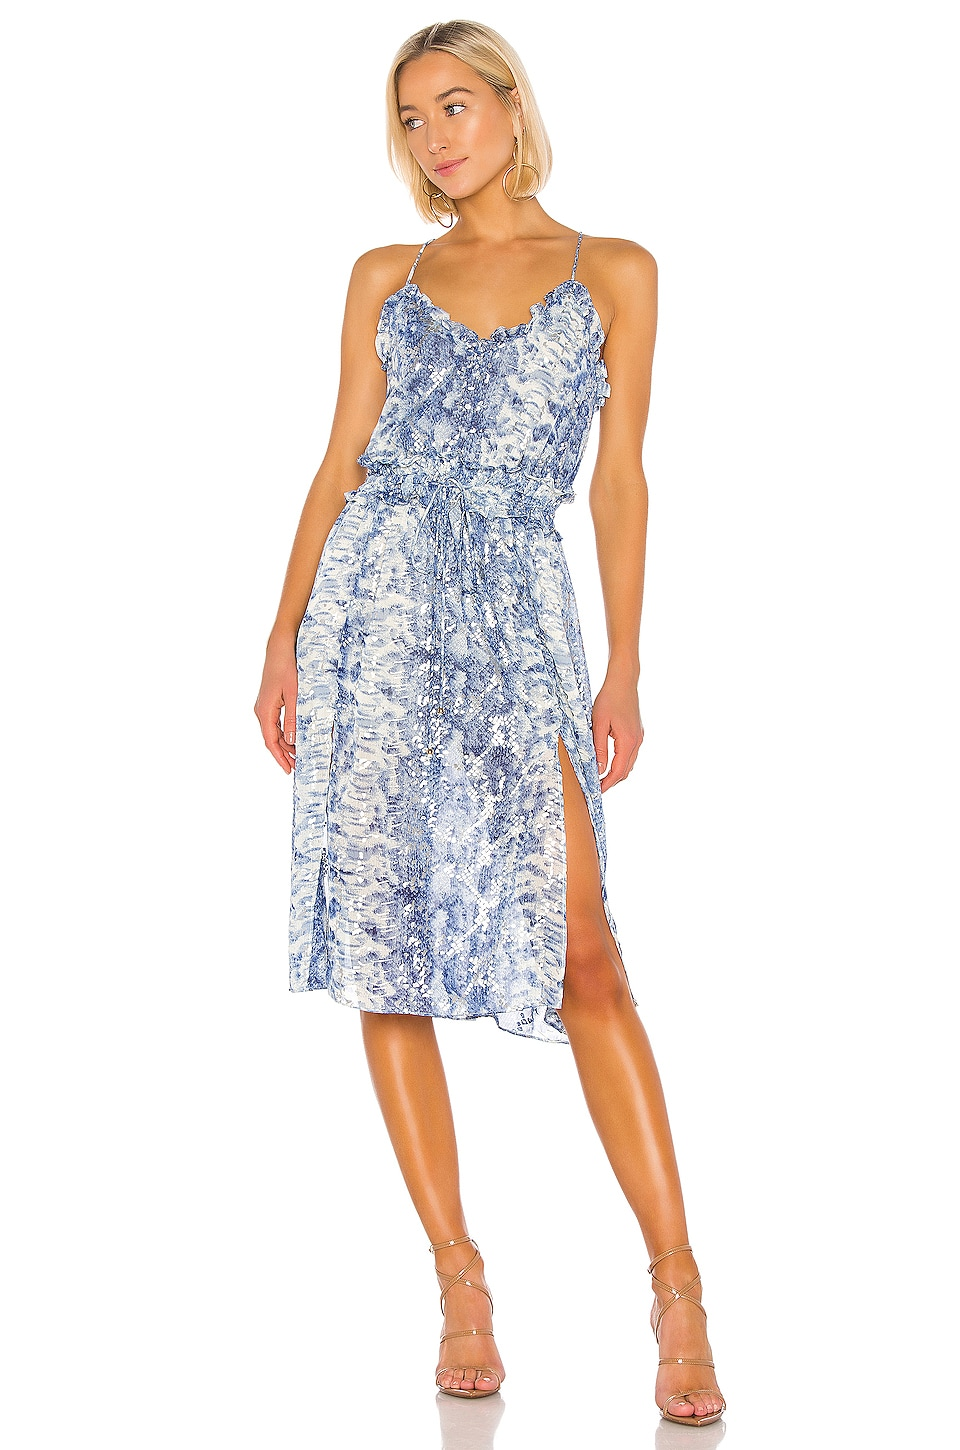 ELLIATT Collection Dress in Blue & Silver